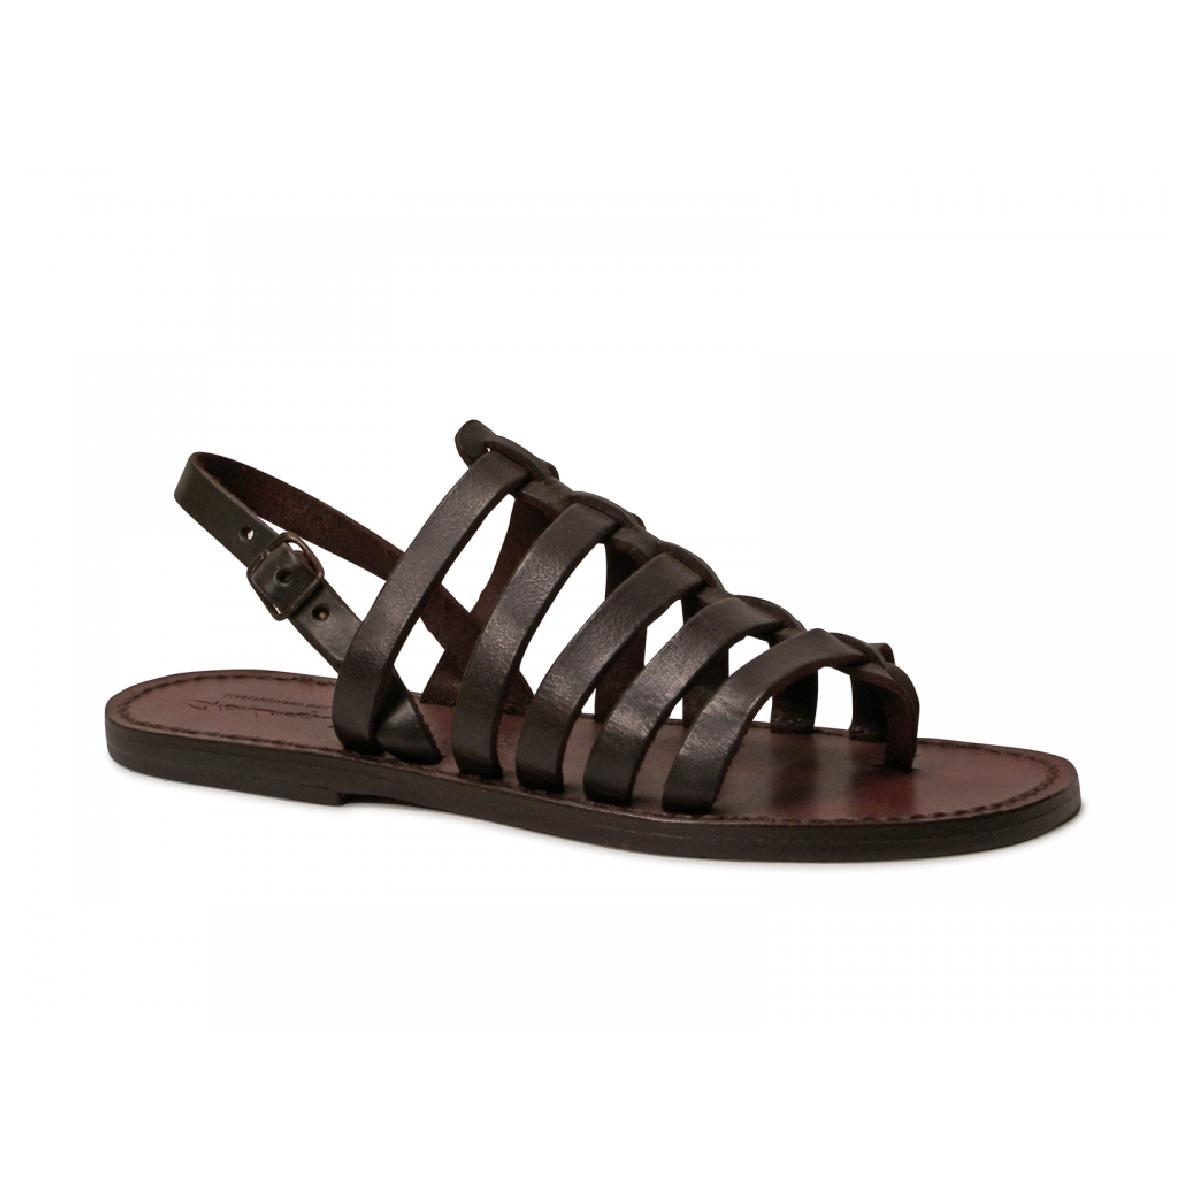 Lastest Inspired Leather Sandals BROWN Handmade Sandals  Indian Sandals